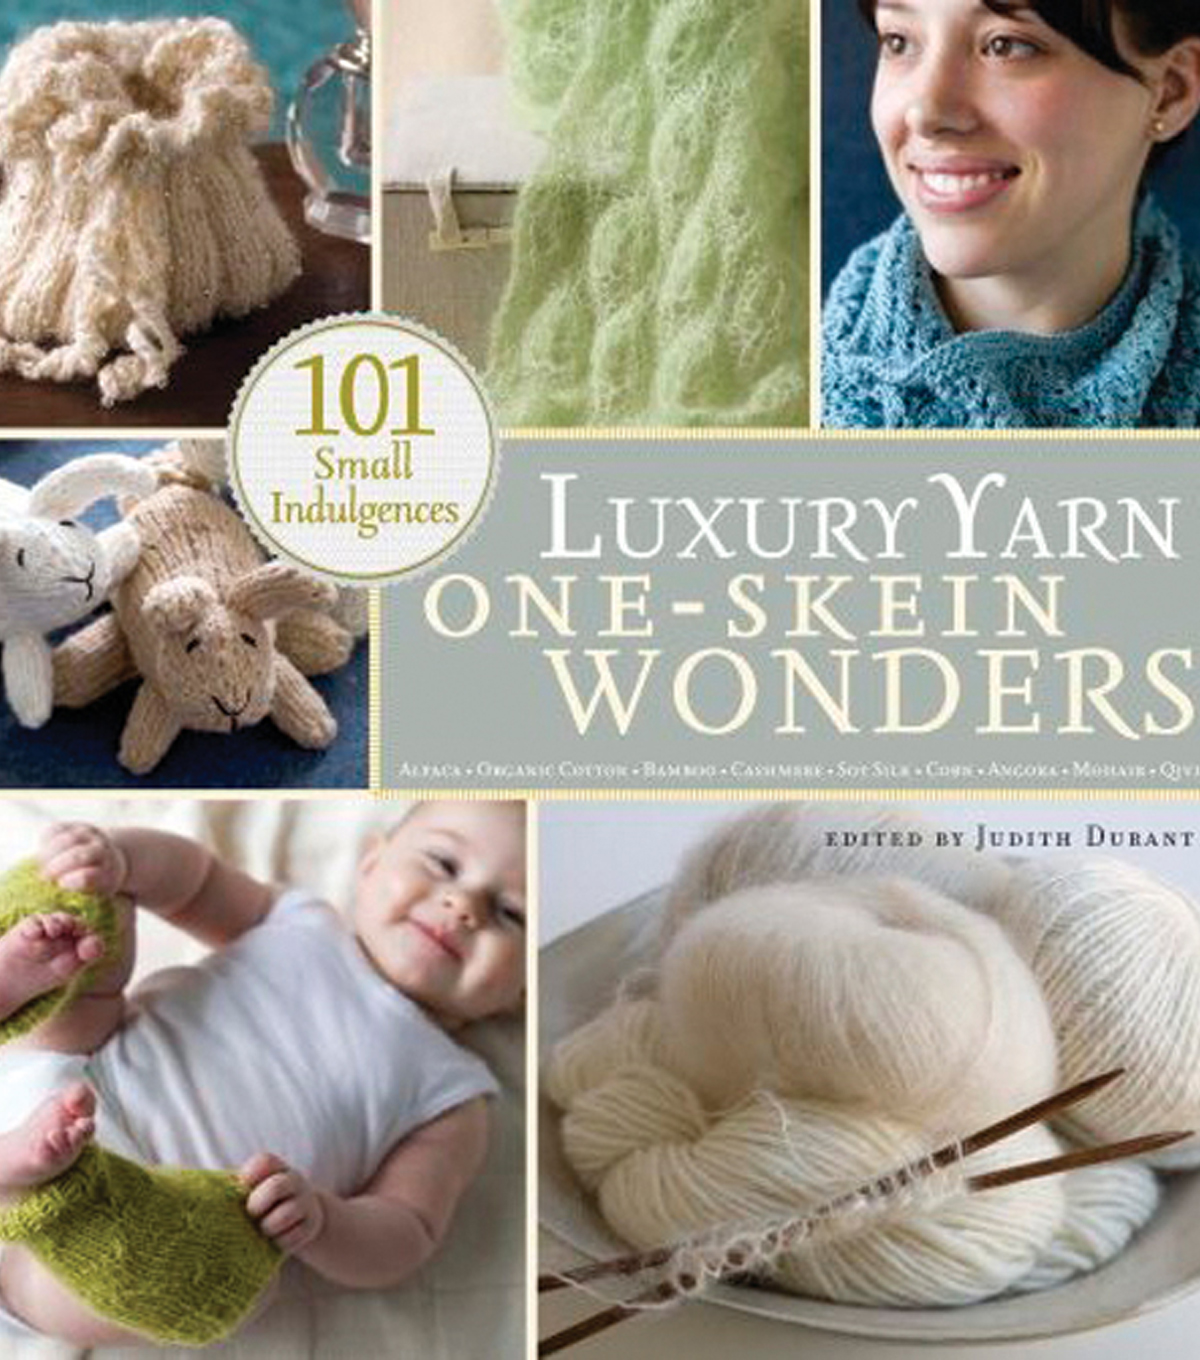 Luxury Yarn One-Skein Wonders Book